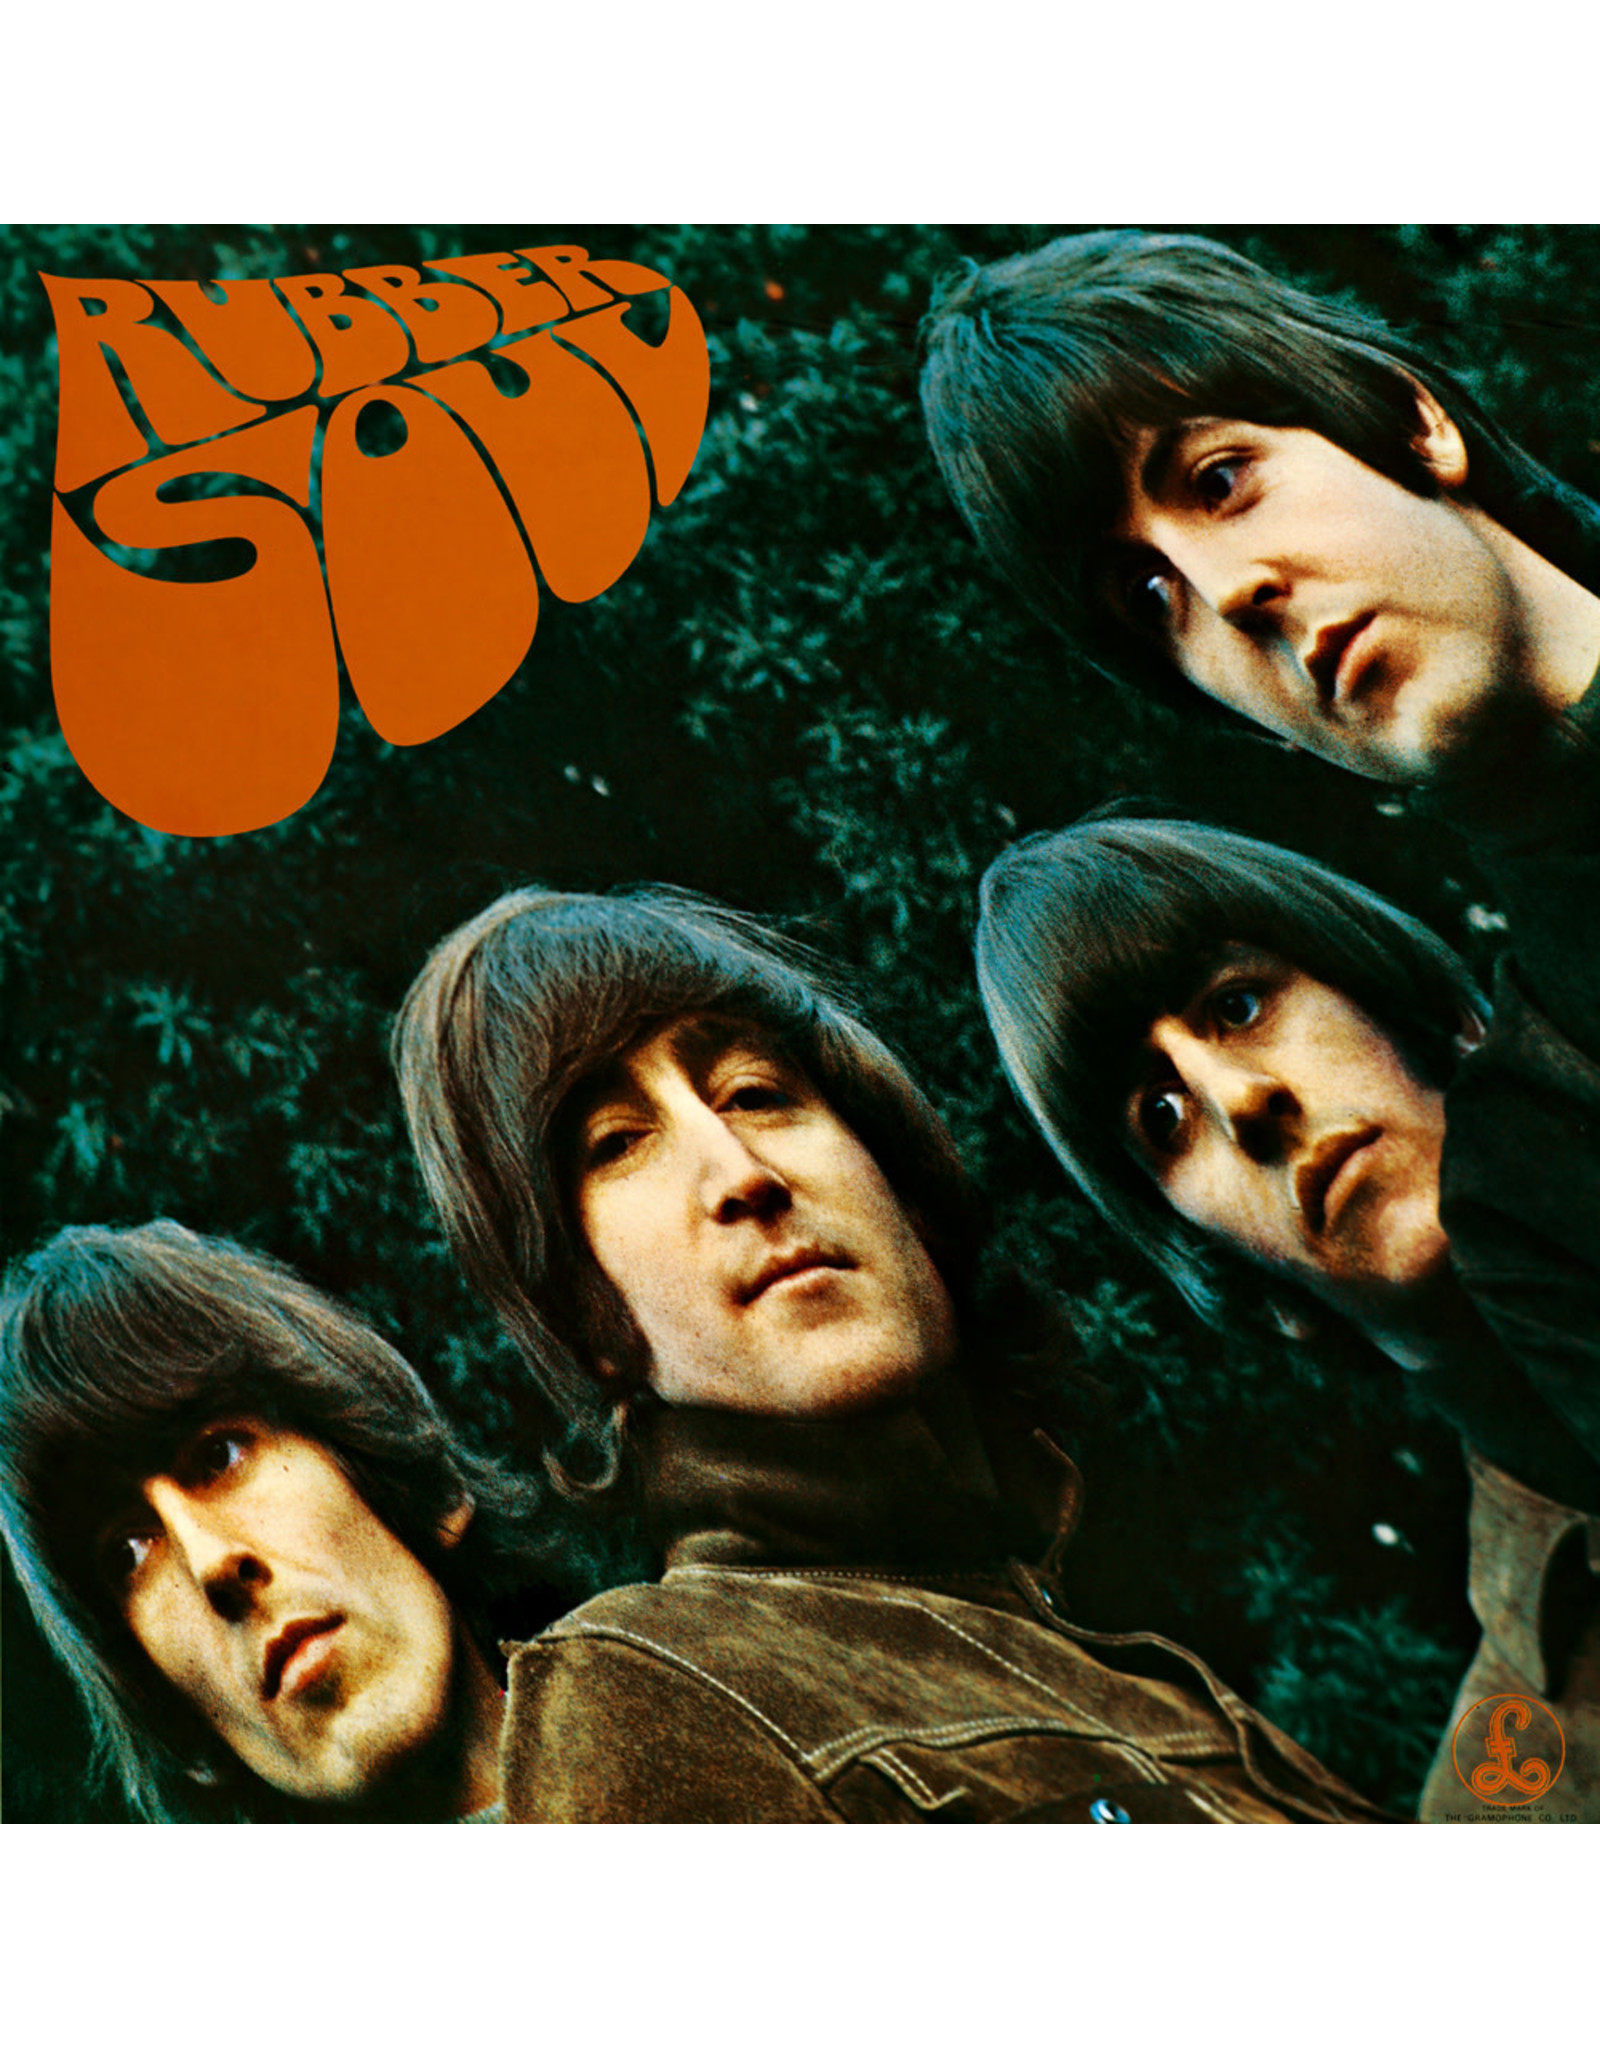 Beatles - Rubber Soul (2009 Stereo Mix)